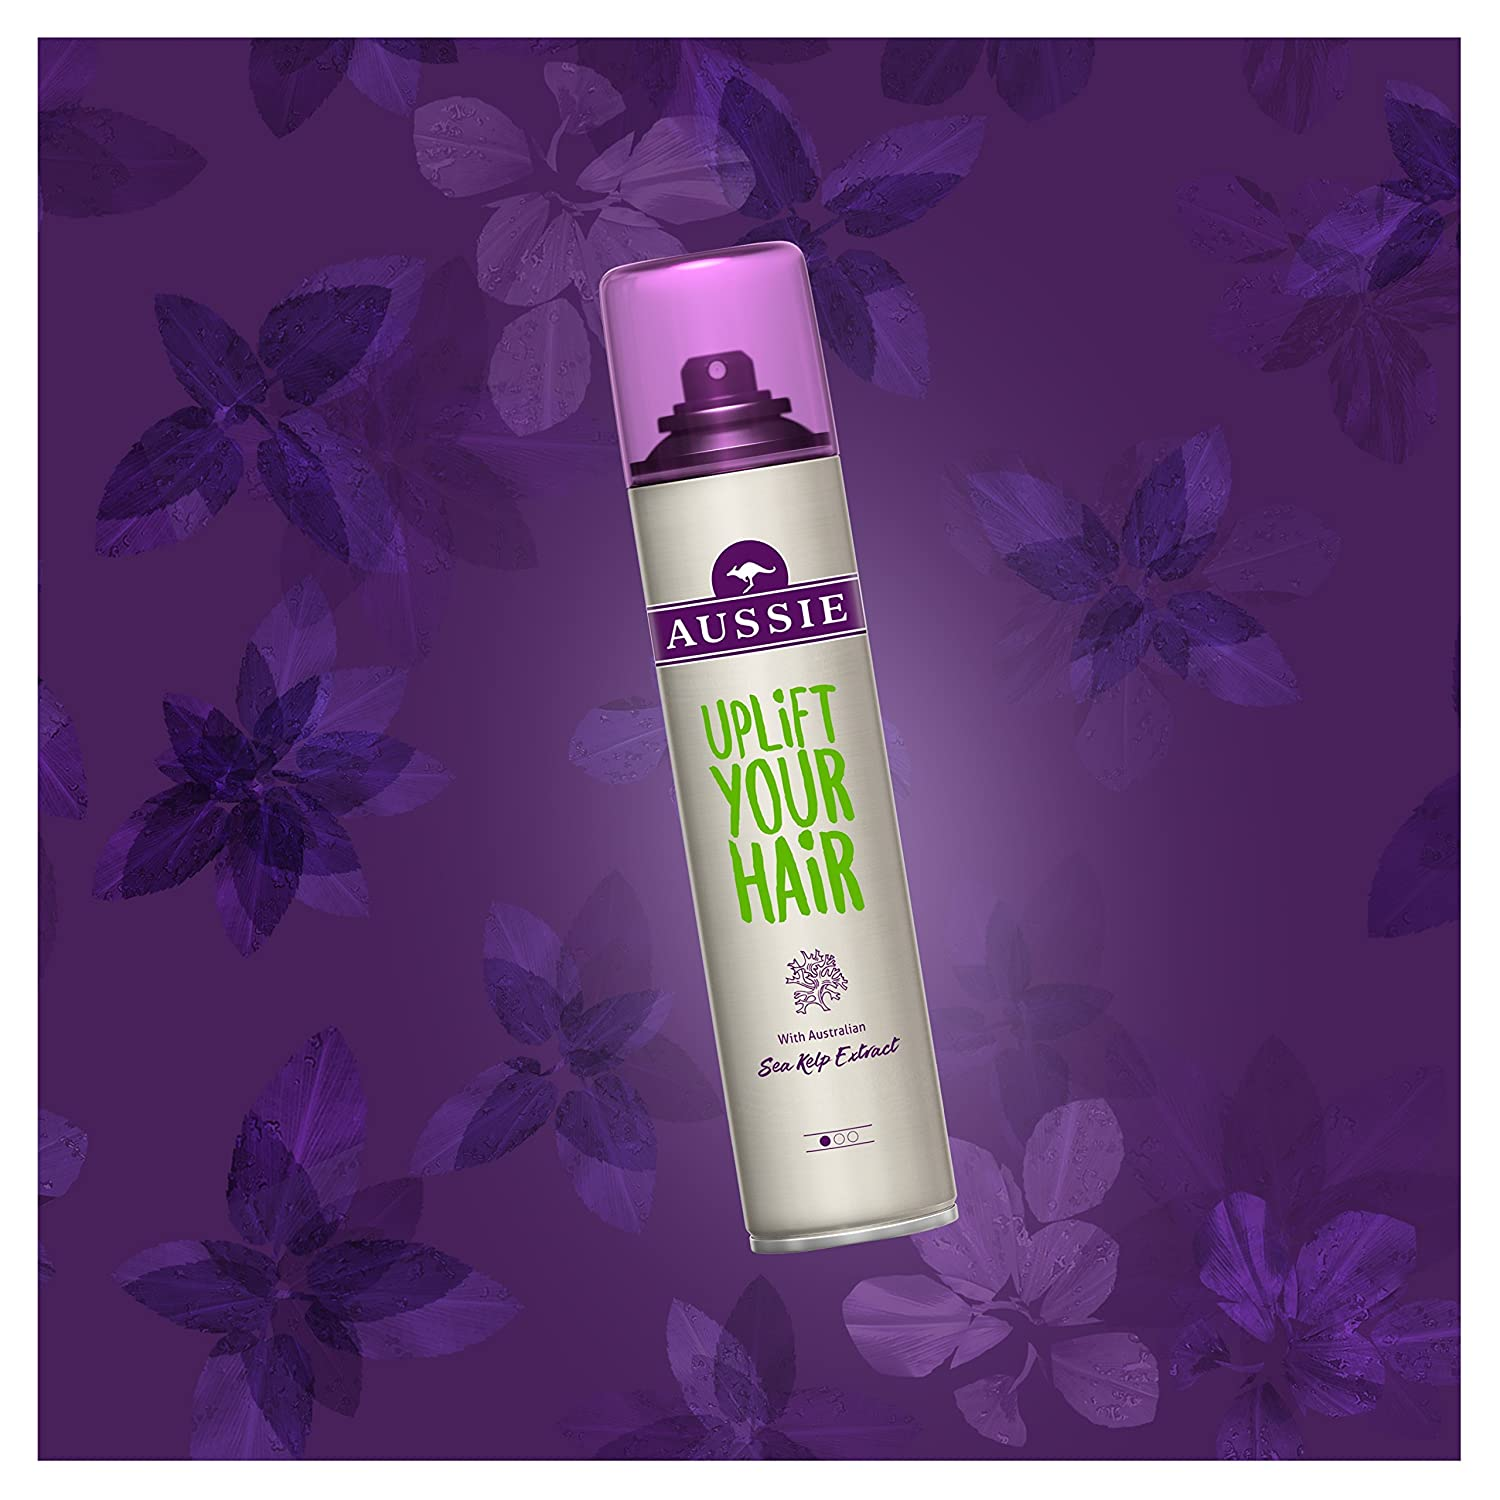 Aussie doble personalidad 250ml Hairspray alta Hold & High Shine (Pack de 3) Procter and Gamble Spain 5011321626478